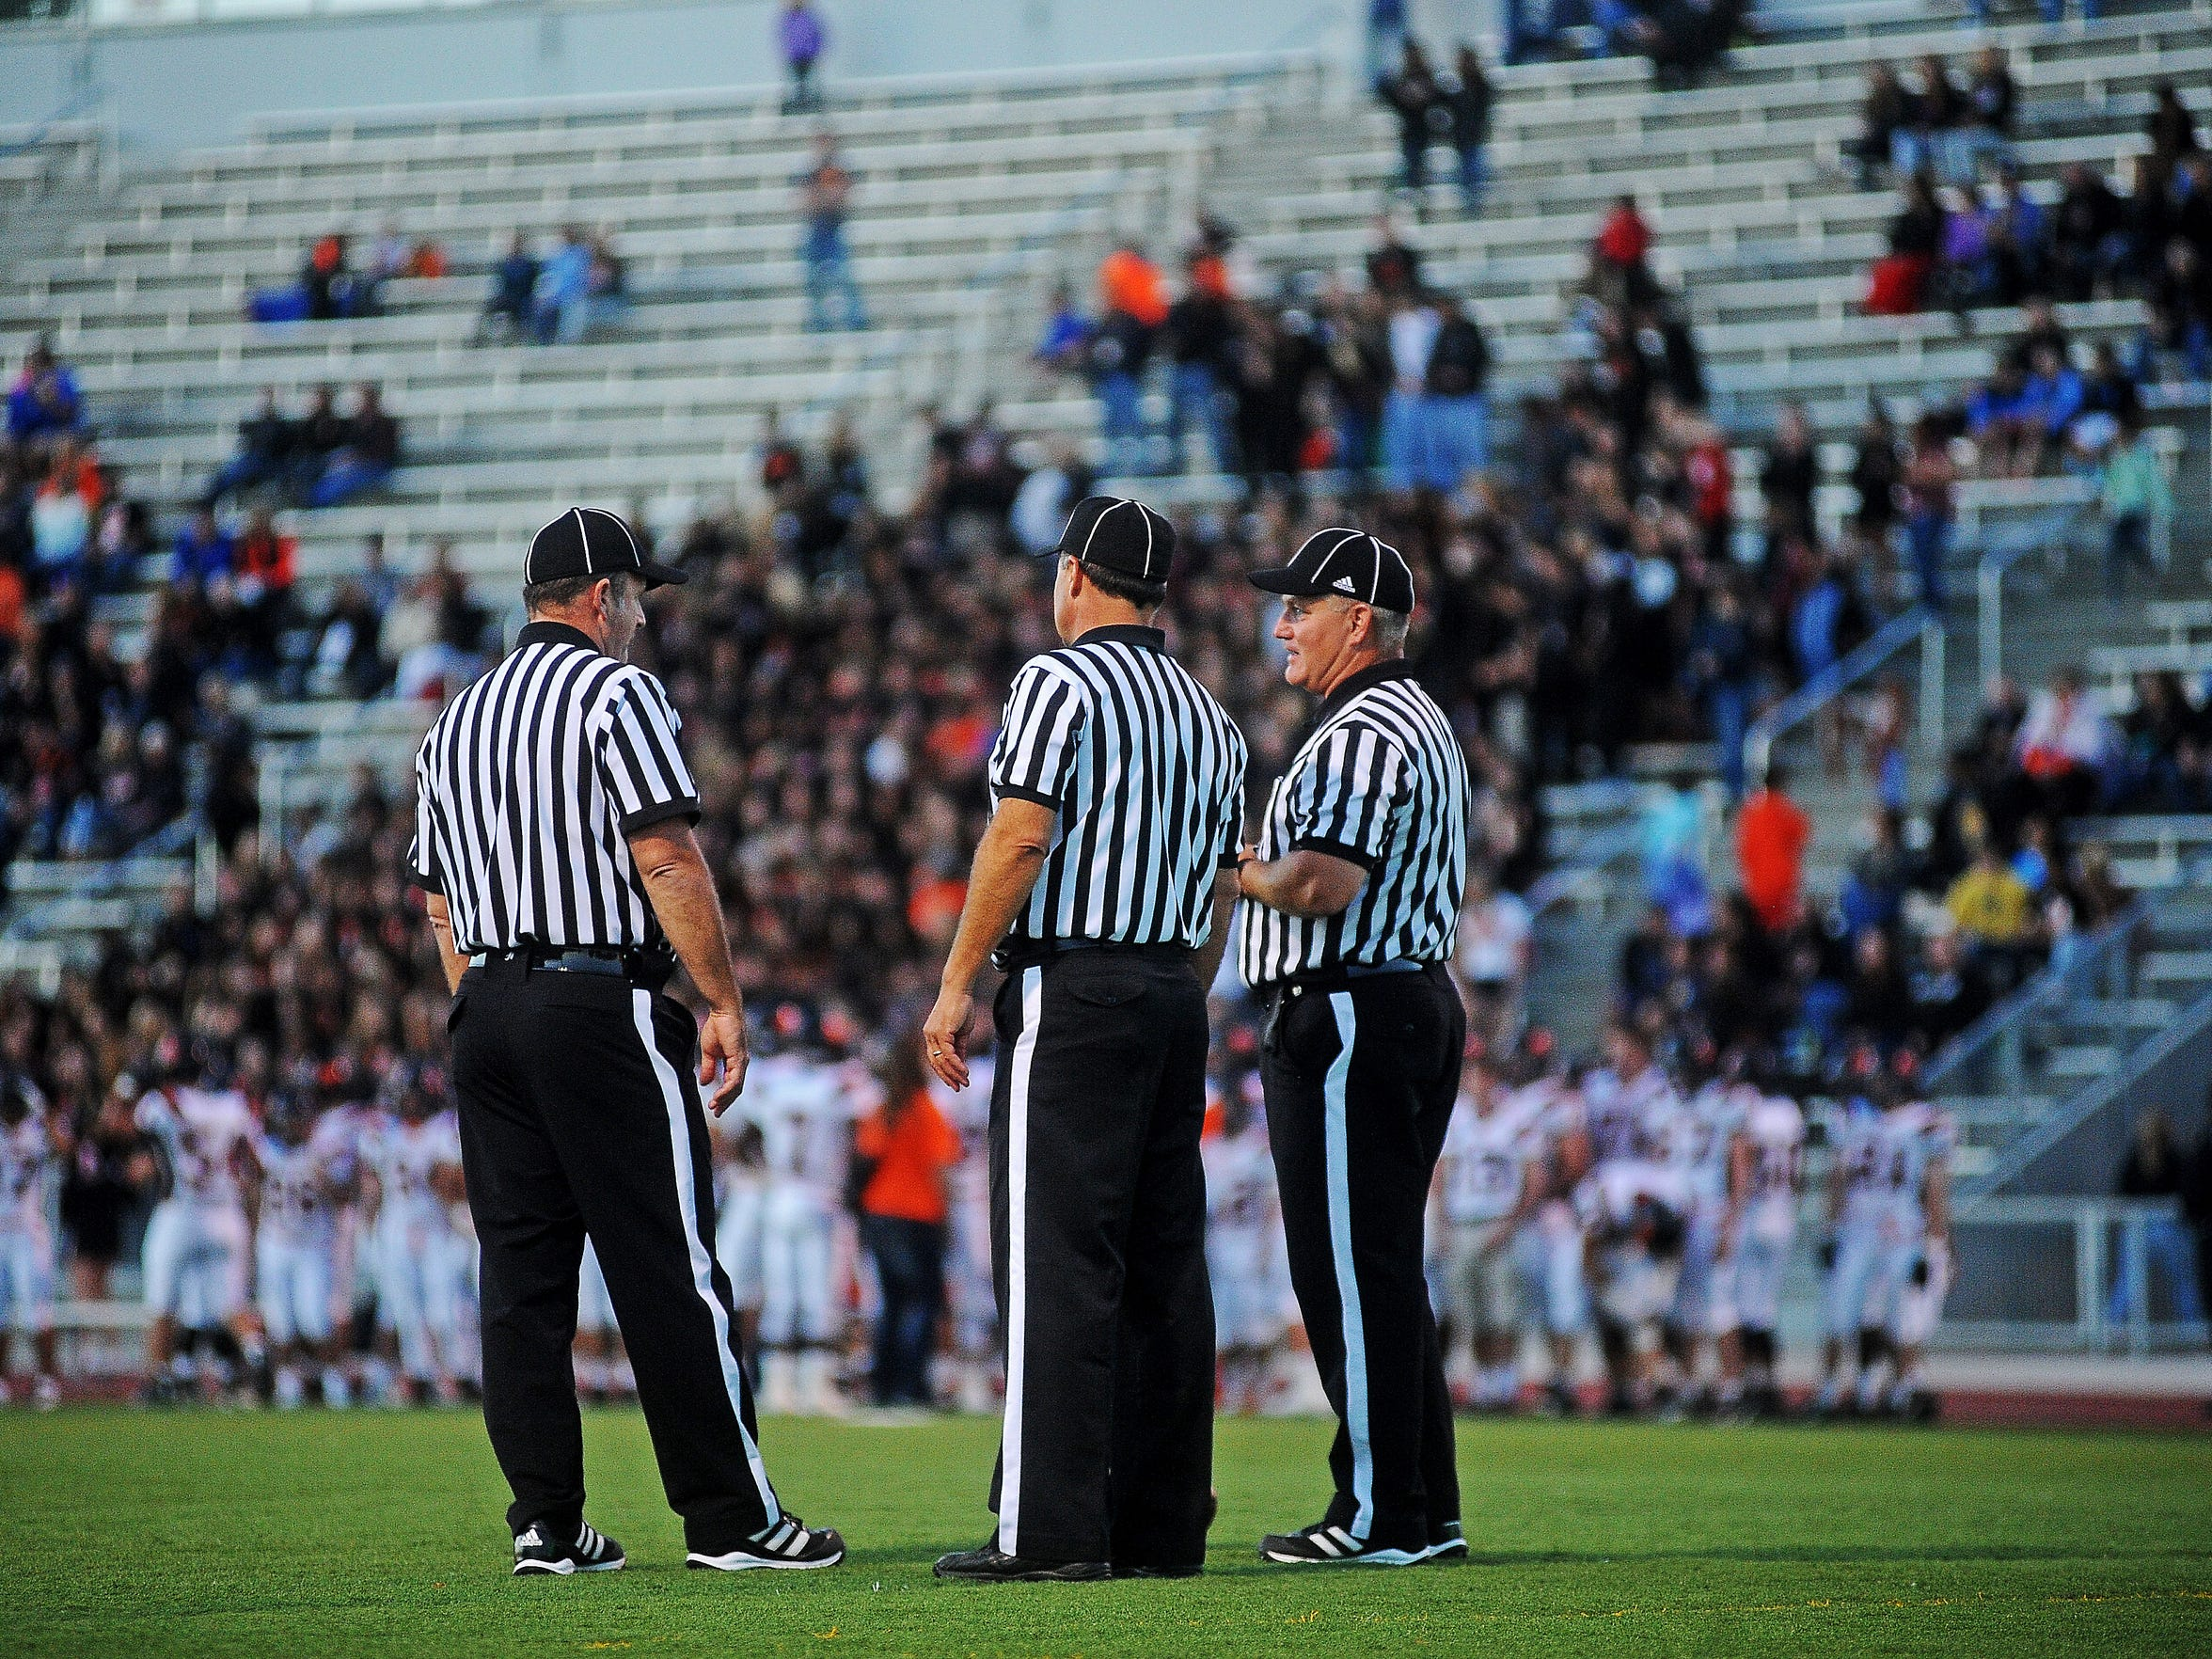 7533798a8 High school football officials meet during a game between Roosevelt and  Washington on Sept. 5. There were 1